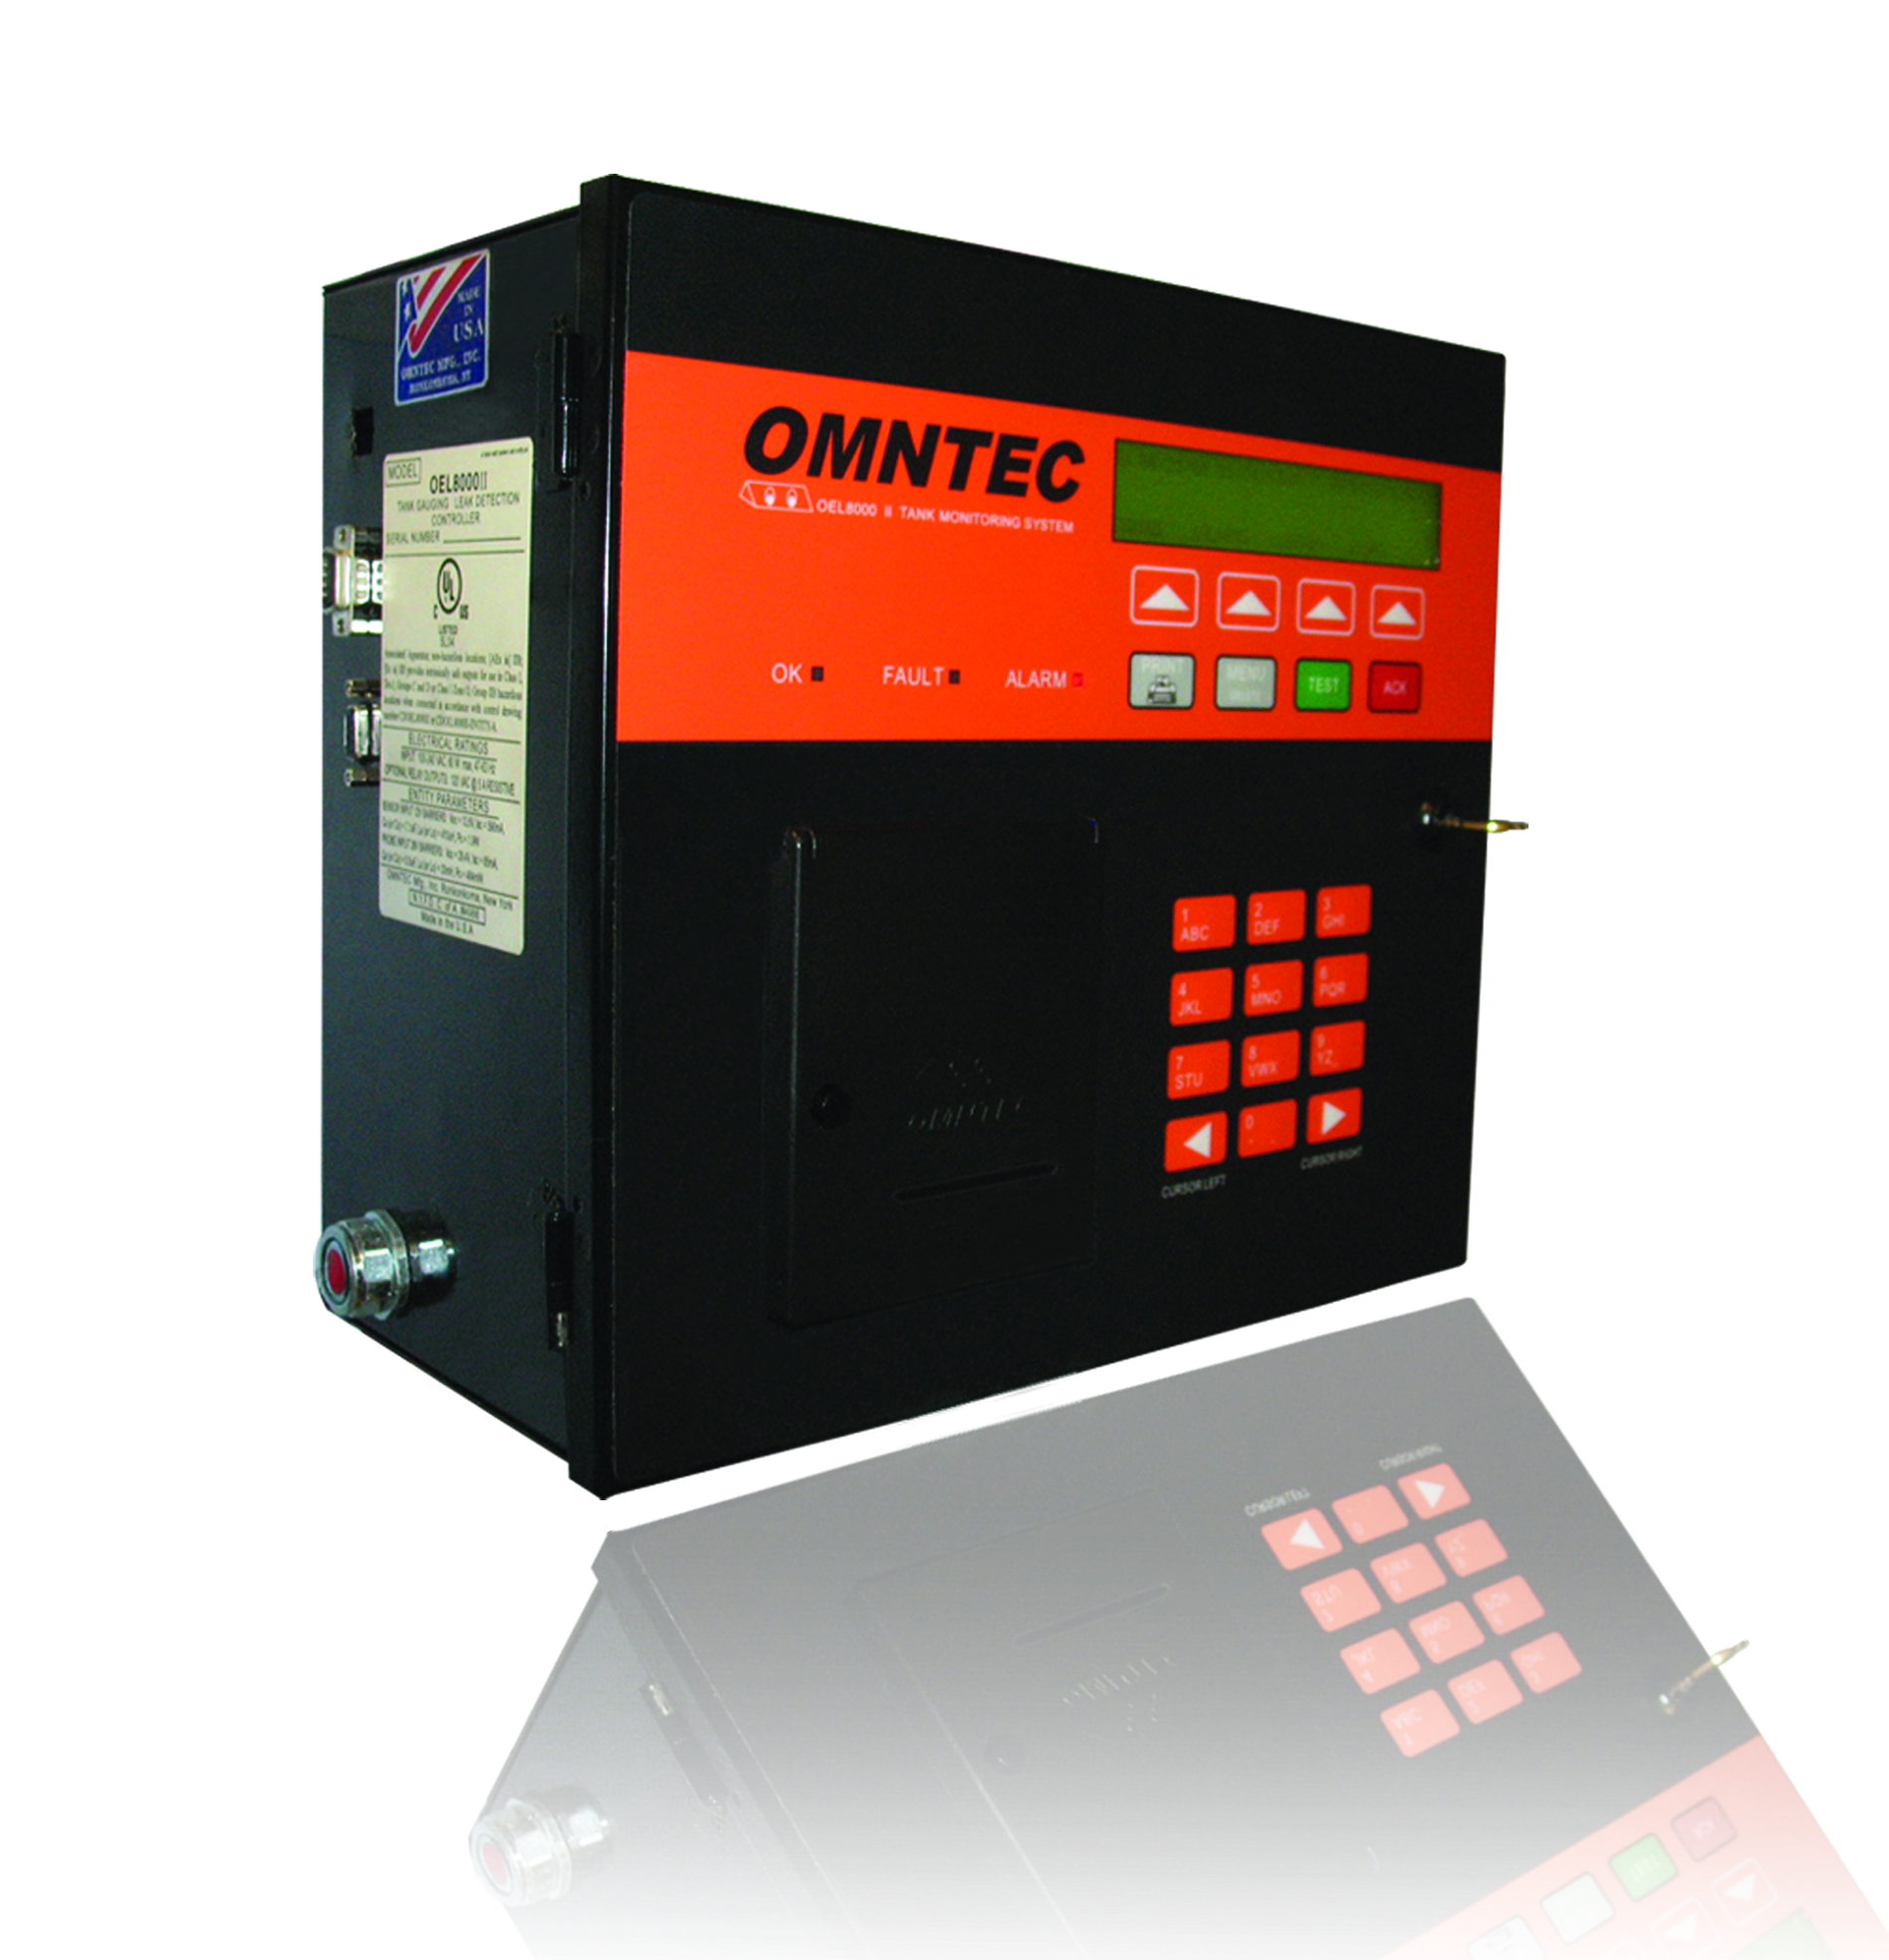 Oel8000ii W Omntec Tank Monitoring And Leak Detection